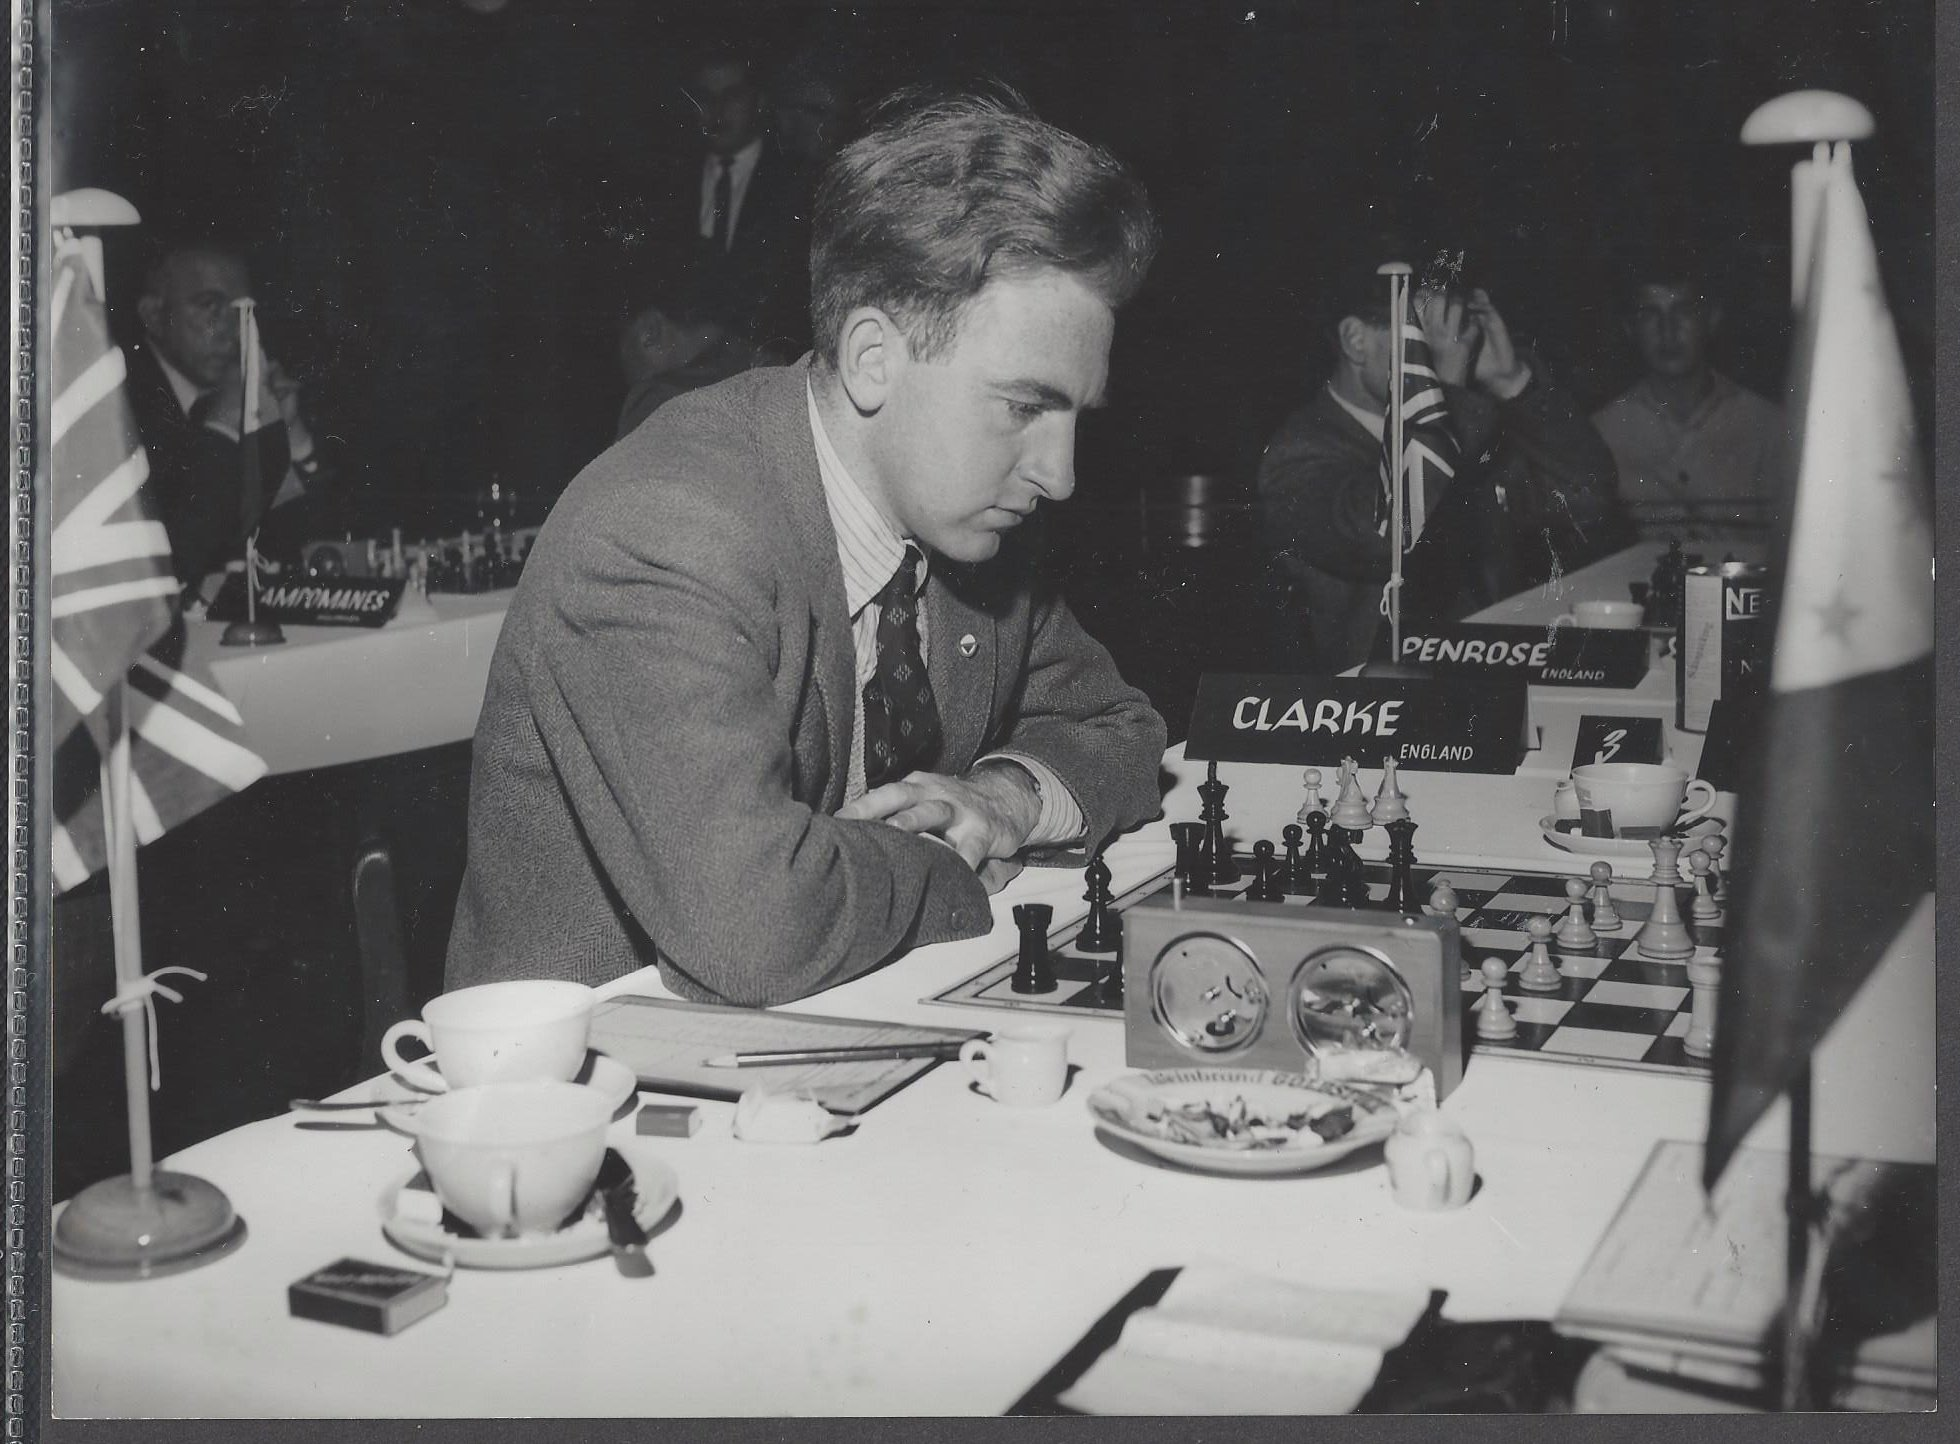 Meliton Borja of the Philippines v. Peter Clarke from the 1958 Munich Olympiad played on October 9th 1958. The game was drawn in 49 moves. From the collection of David Jarrett with many thanks.